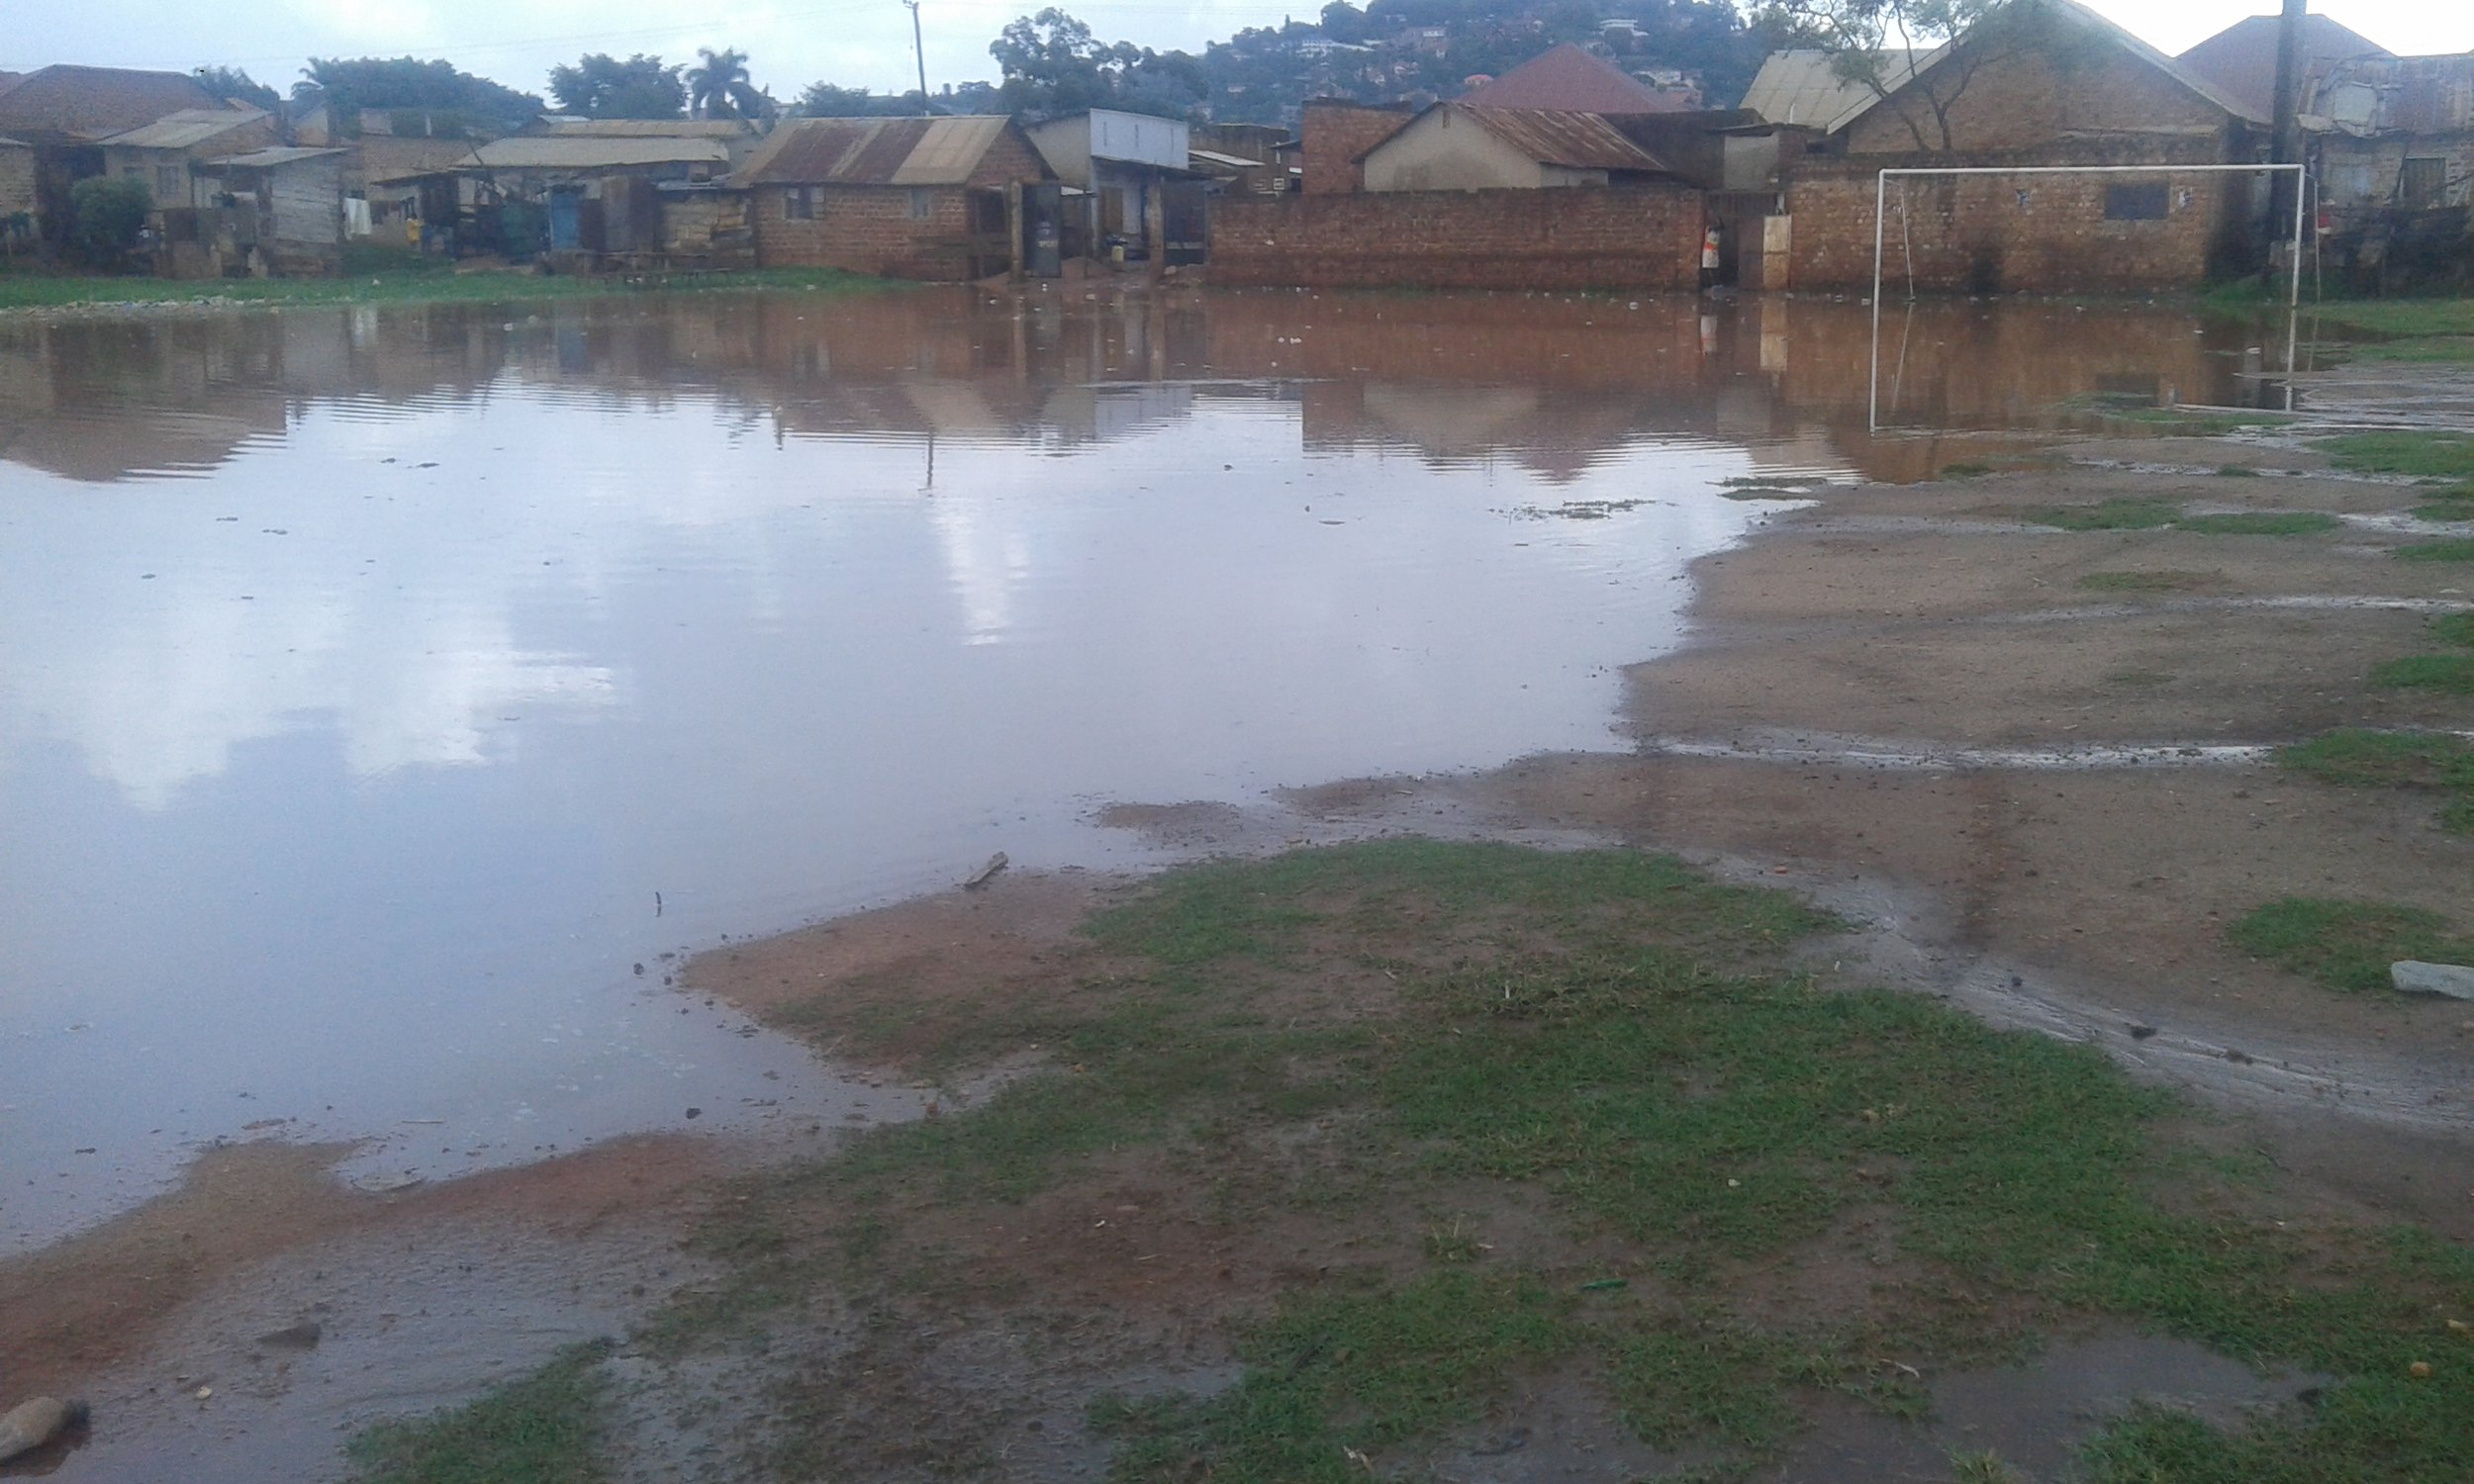 Large-scale flooding severely affects the usability of the field. Credit: UN-Habitat